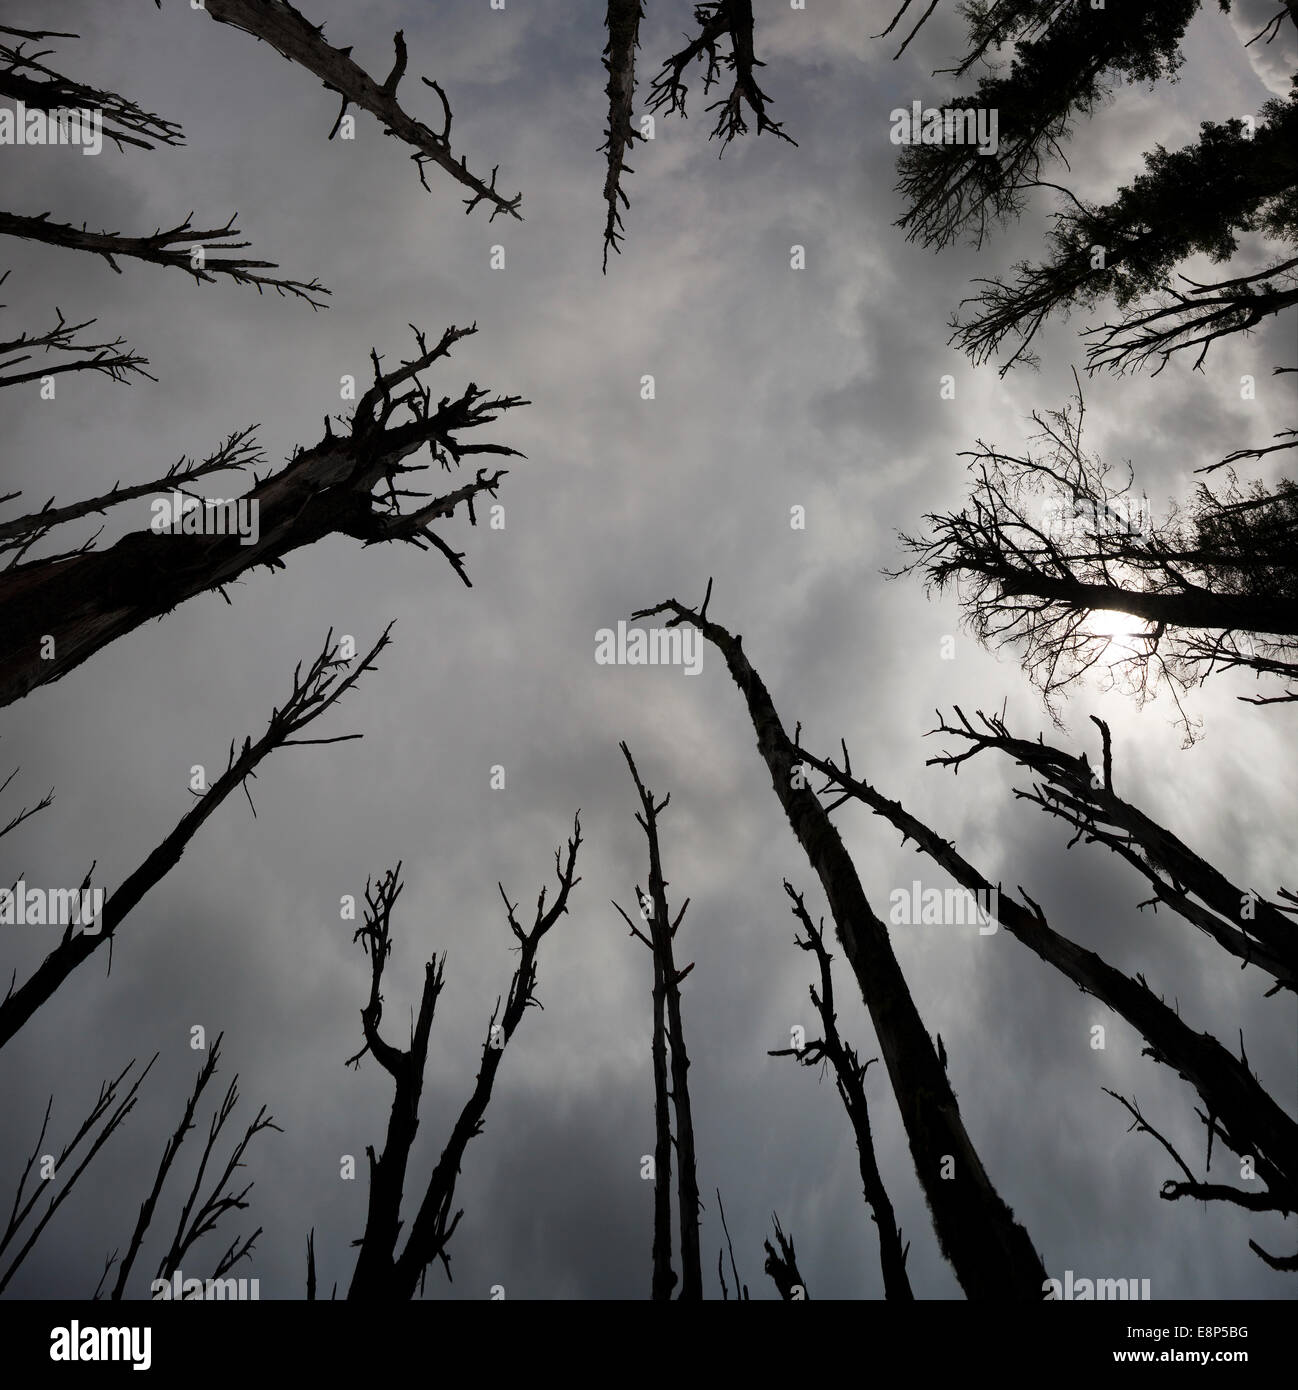 Dark Scary Dead Trees Stormy Skies Haunted Woods low angle view looking up silhouette evil black branches looming - Stock Image